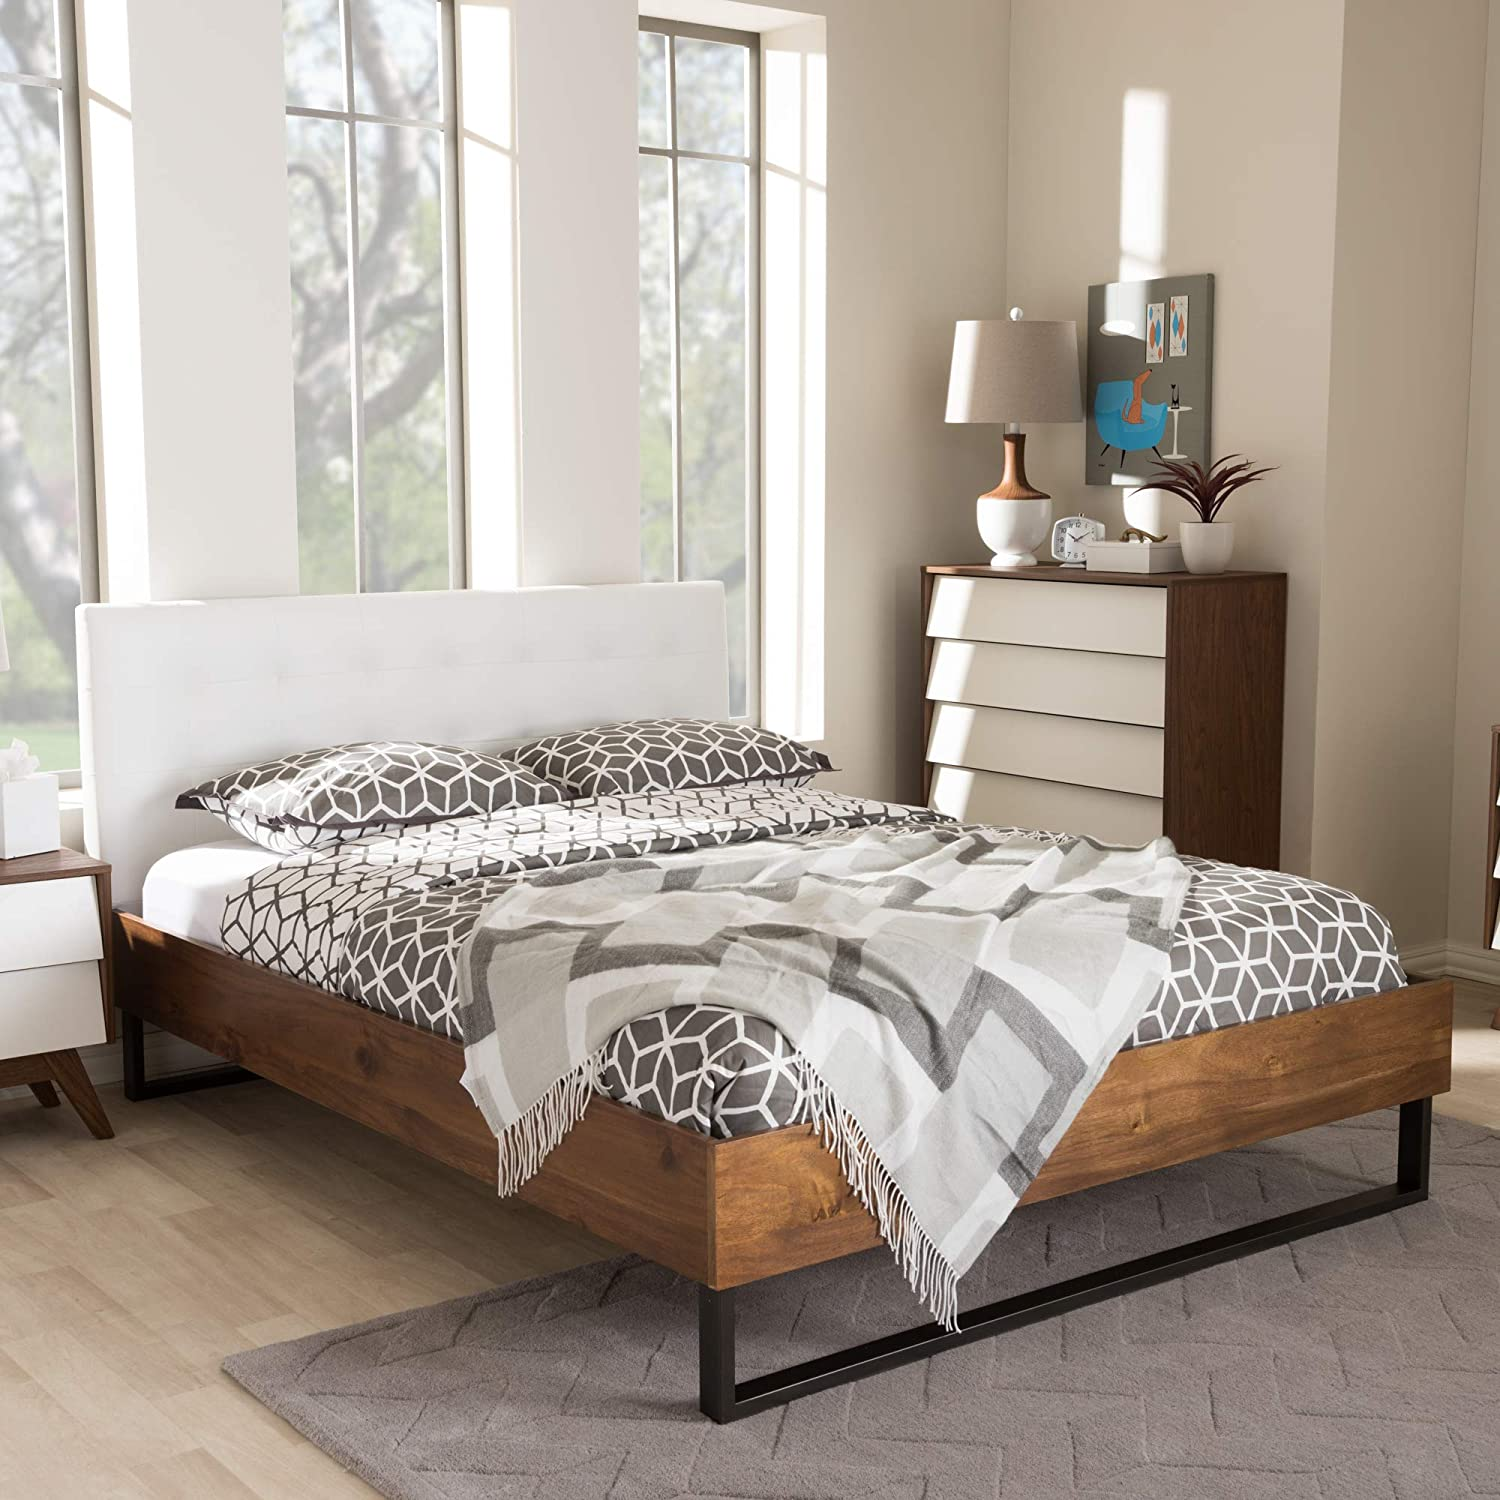 Baxton Studio Rustic Industrial Faux Leather Platform Bed in White (King: 86.42 in. L x 80.71 in. W x 40.35 in. H)